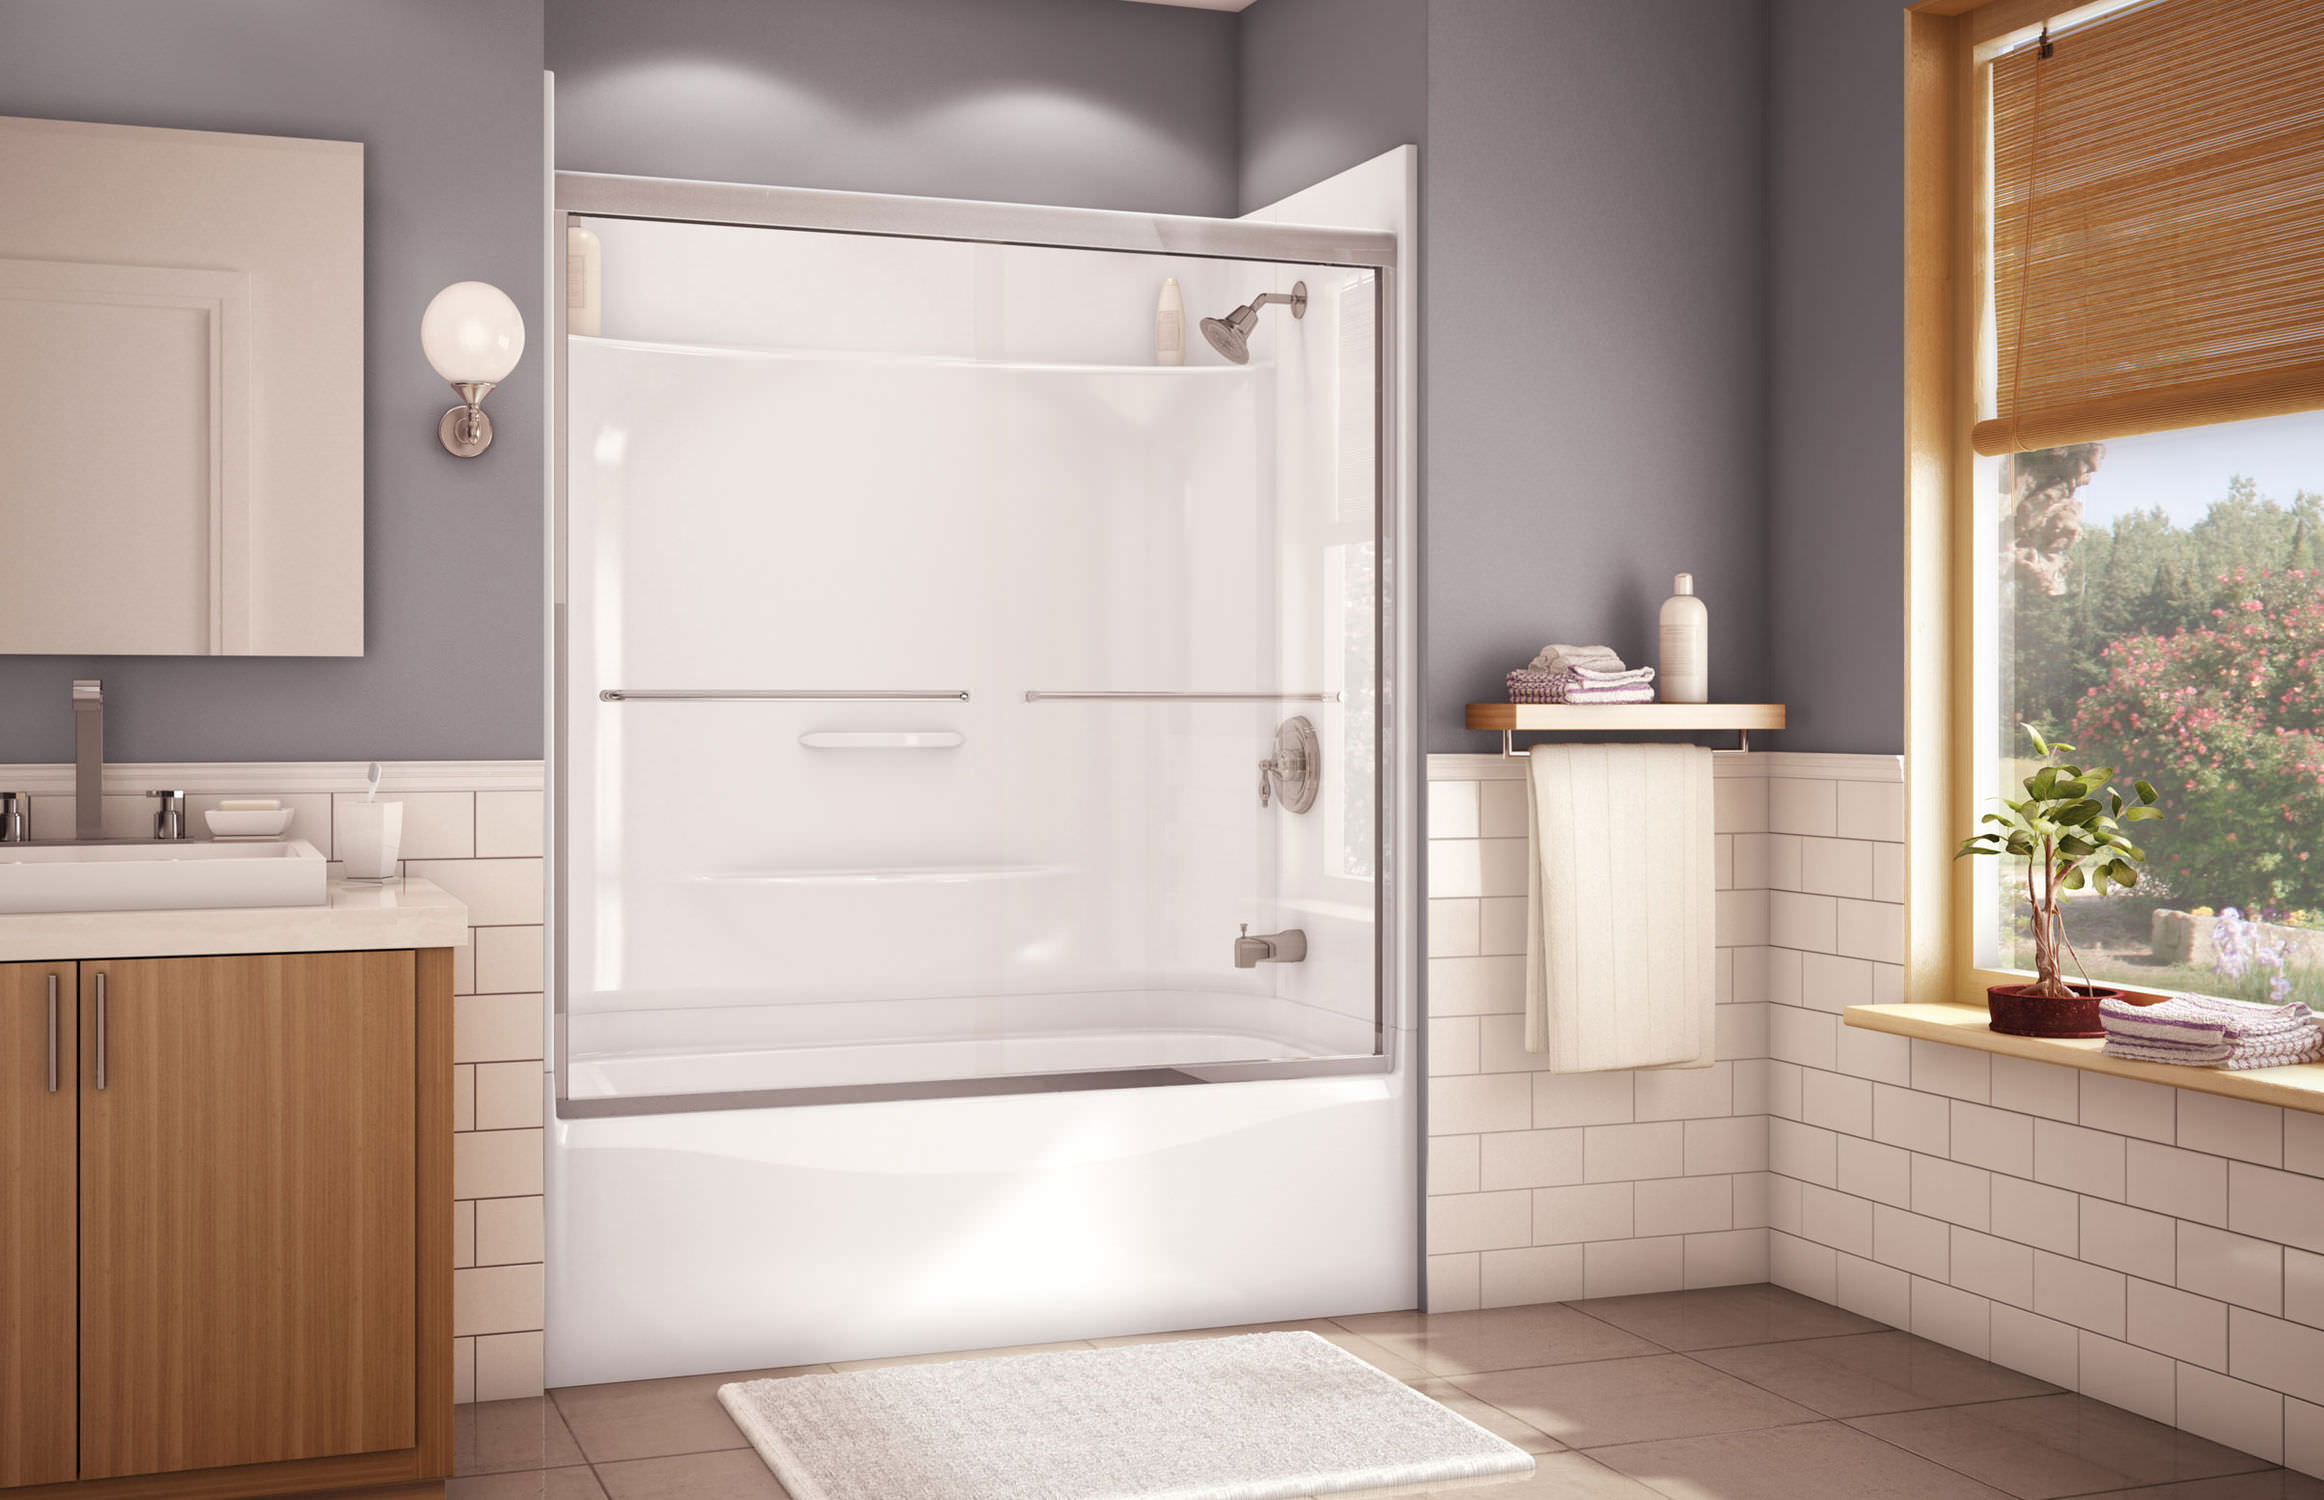 Built in bathtub shower combination   rectangular   acrylic ESSENCE TS 6032  MAAX  Built in bathtub shower combination   rectangular   acrylic  . Maax Tub Shower Combo. Home Design Ideas